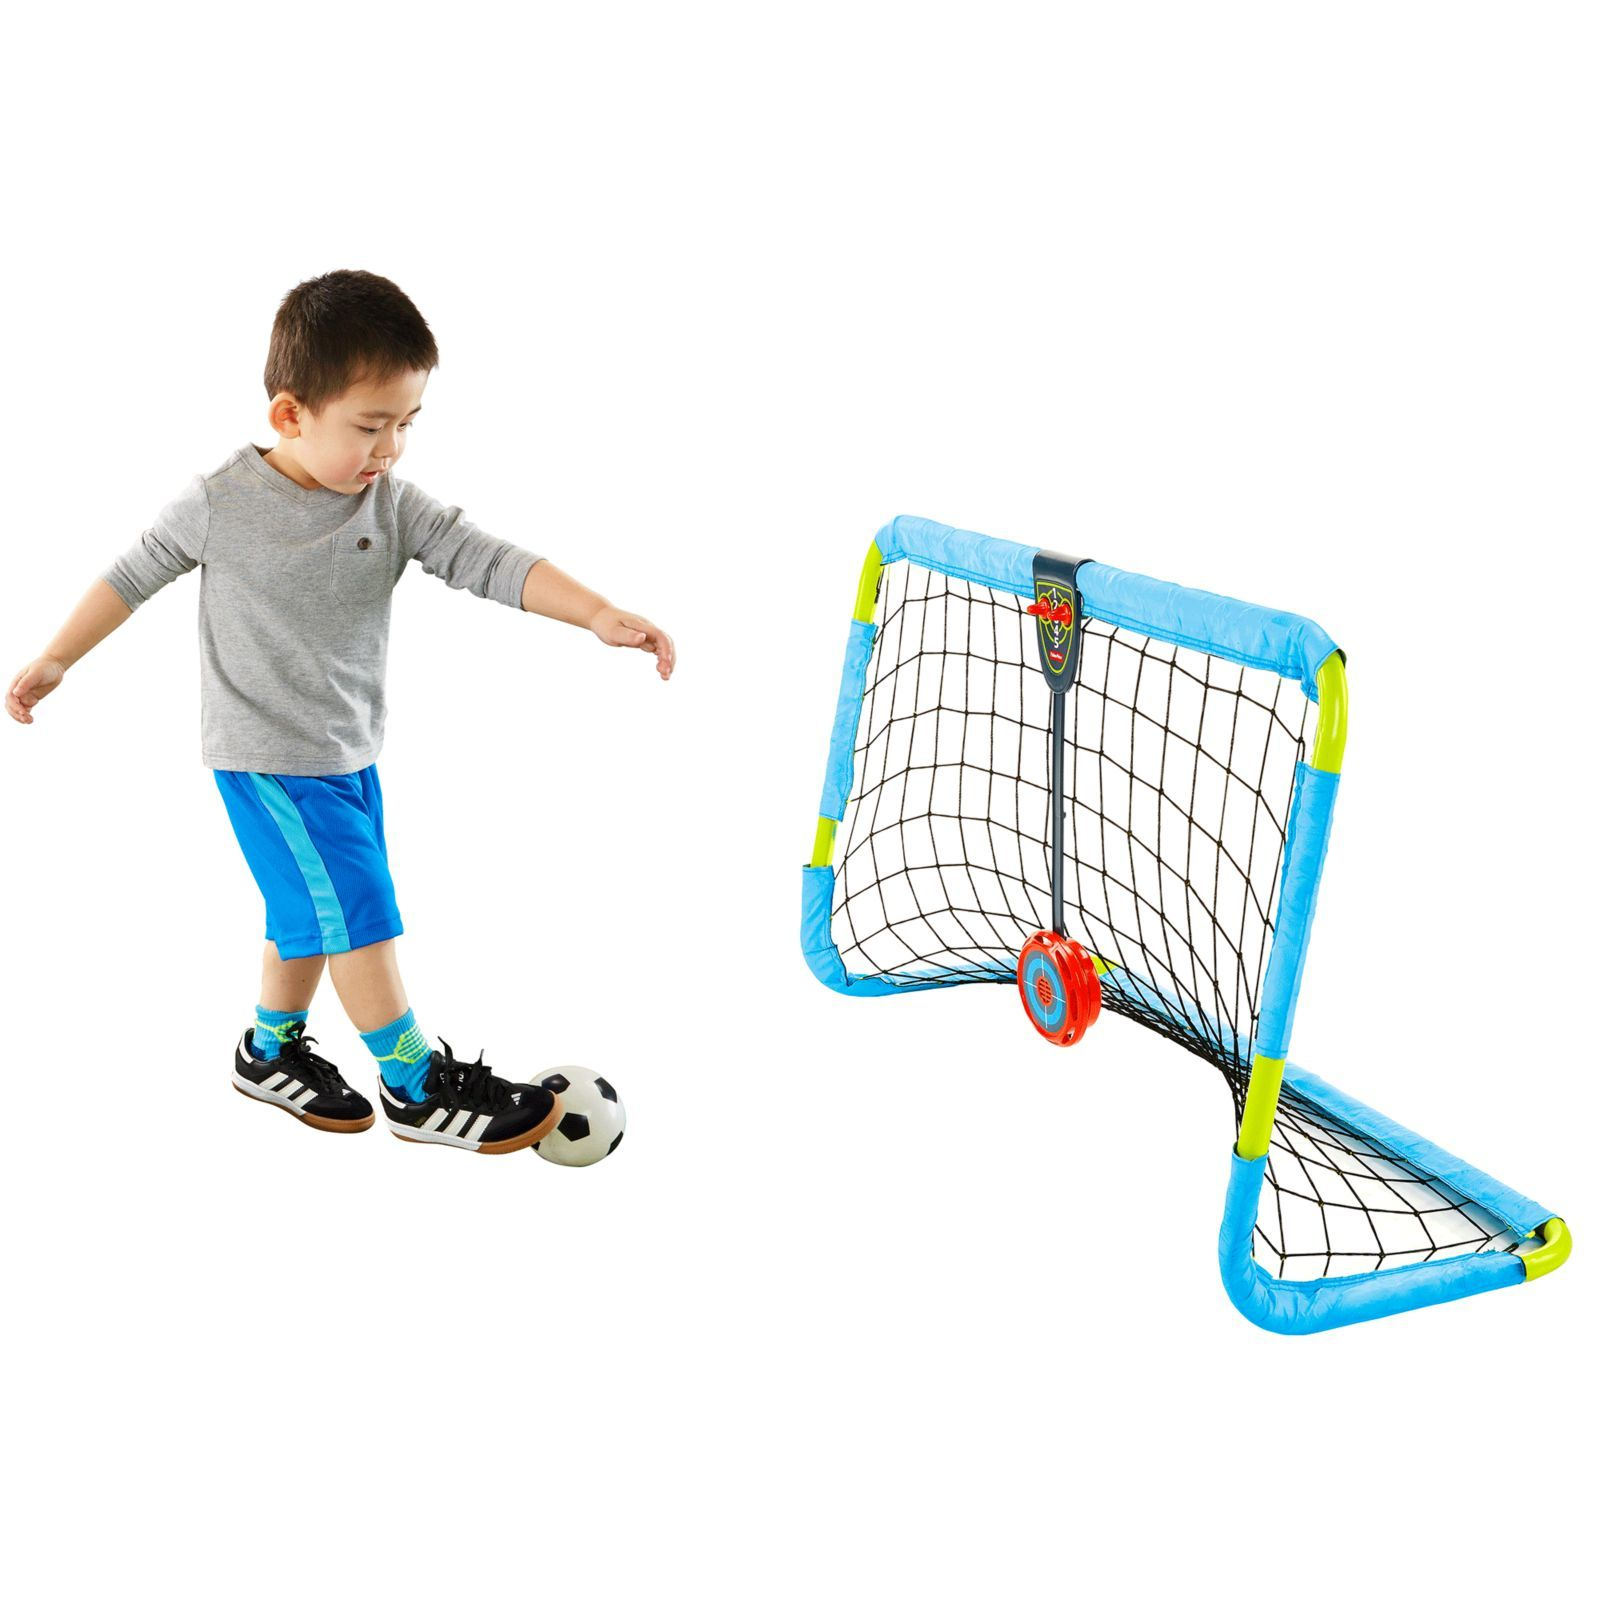 Fisher Price Grow To Pro Super Sounds Soccer Dtm21 Fisher Price Toddler Toys Sports Games For Kids Best Christmas Toys